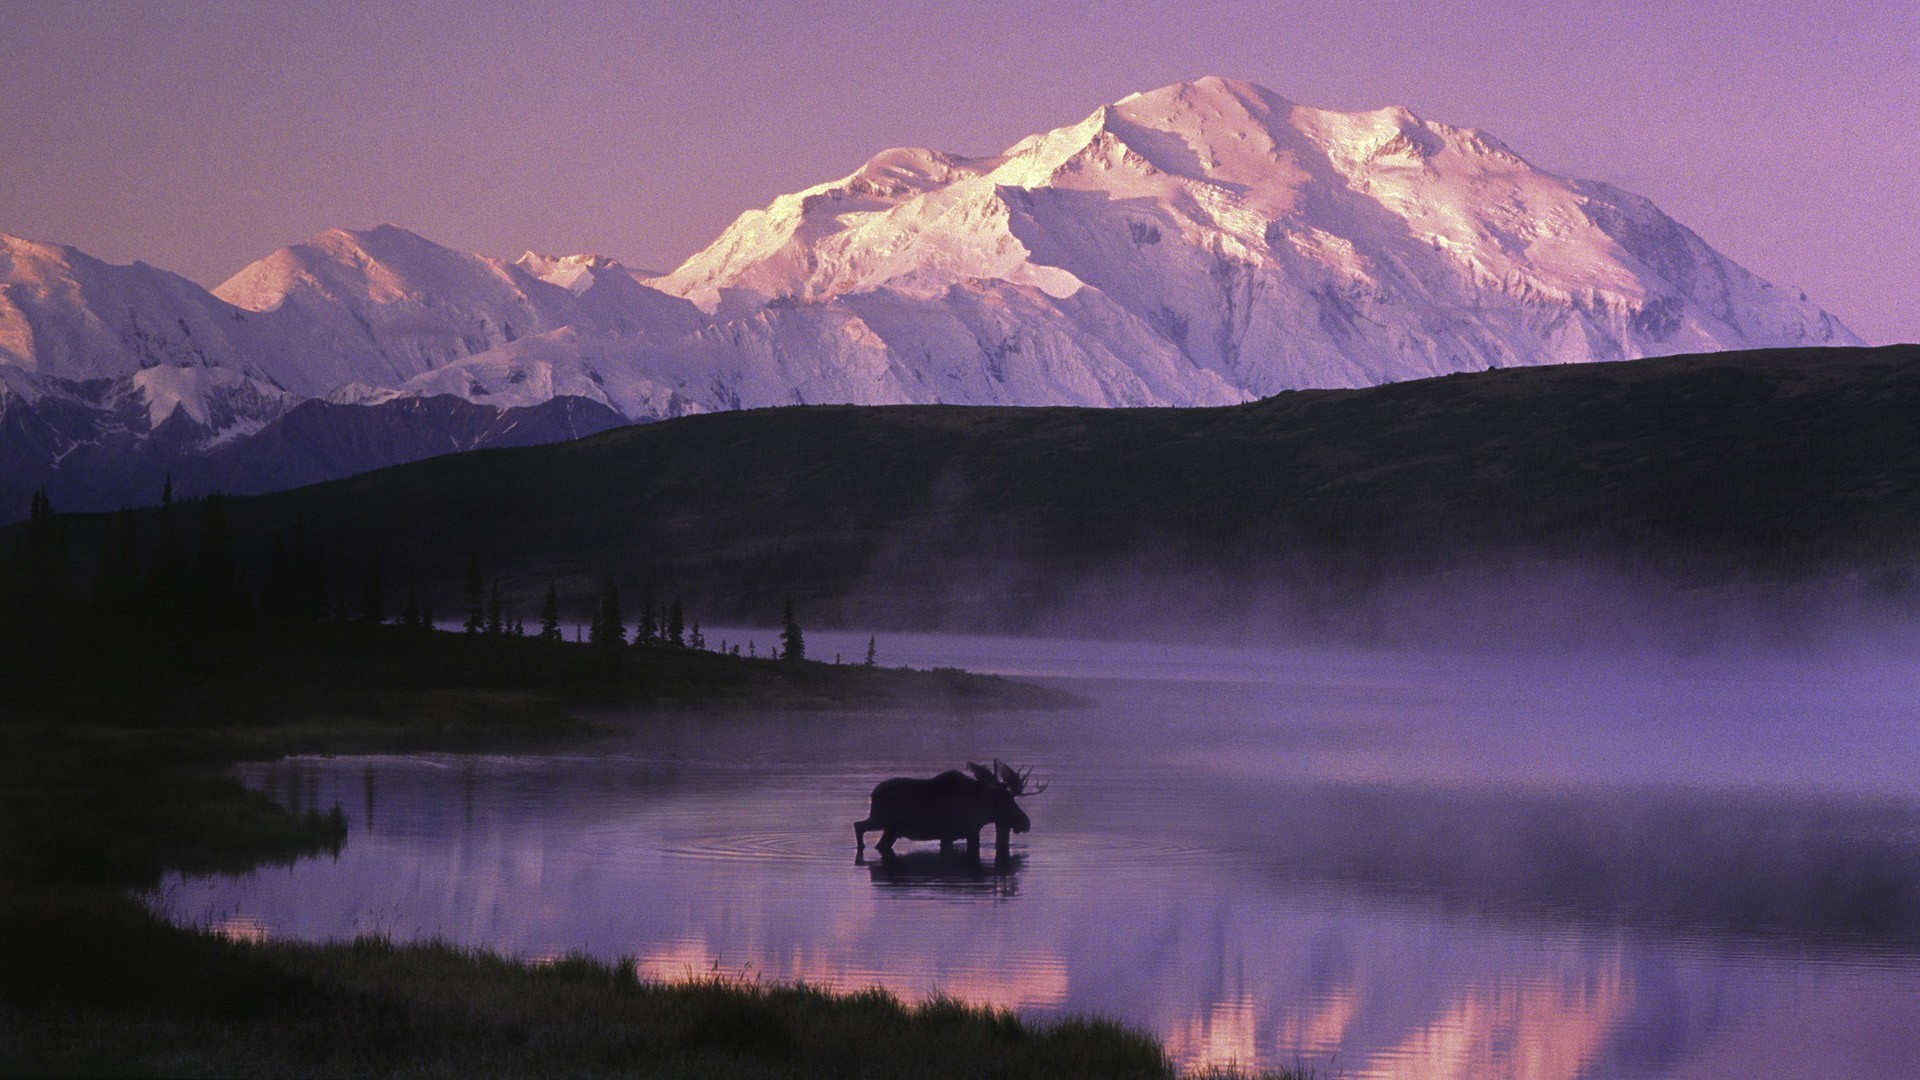 Alaska Backgrounds and Images (49).